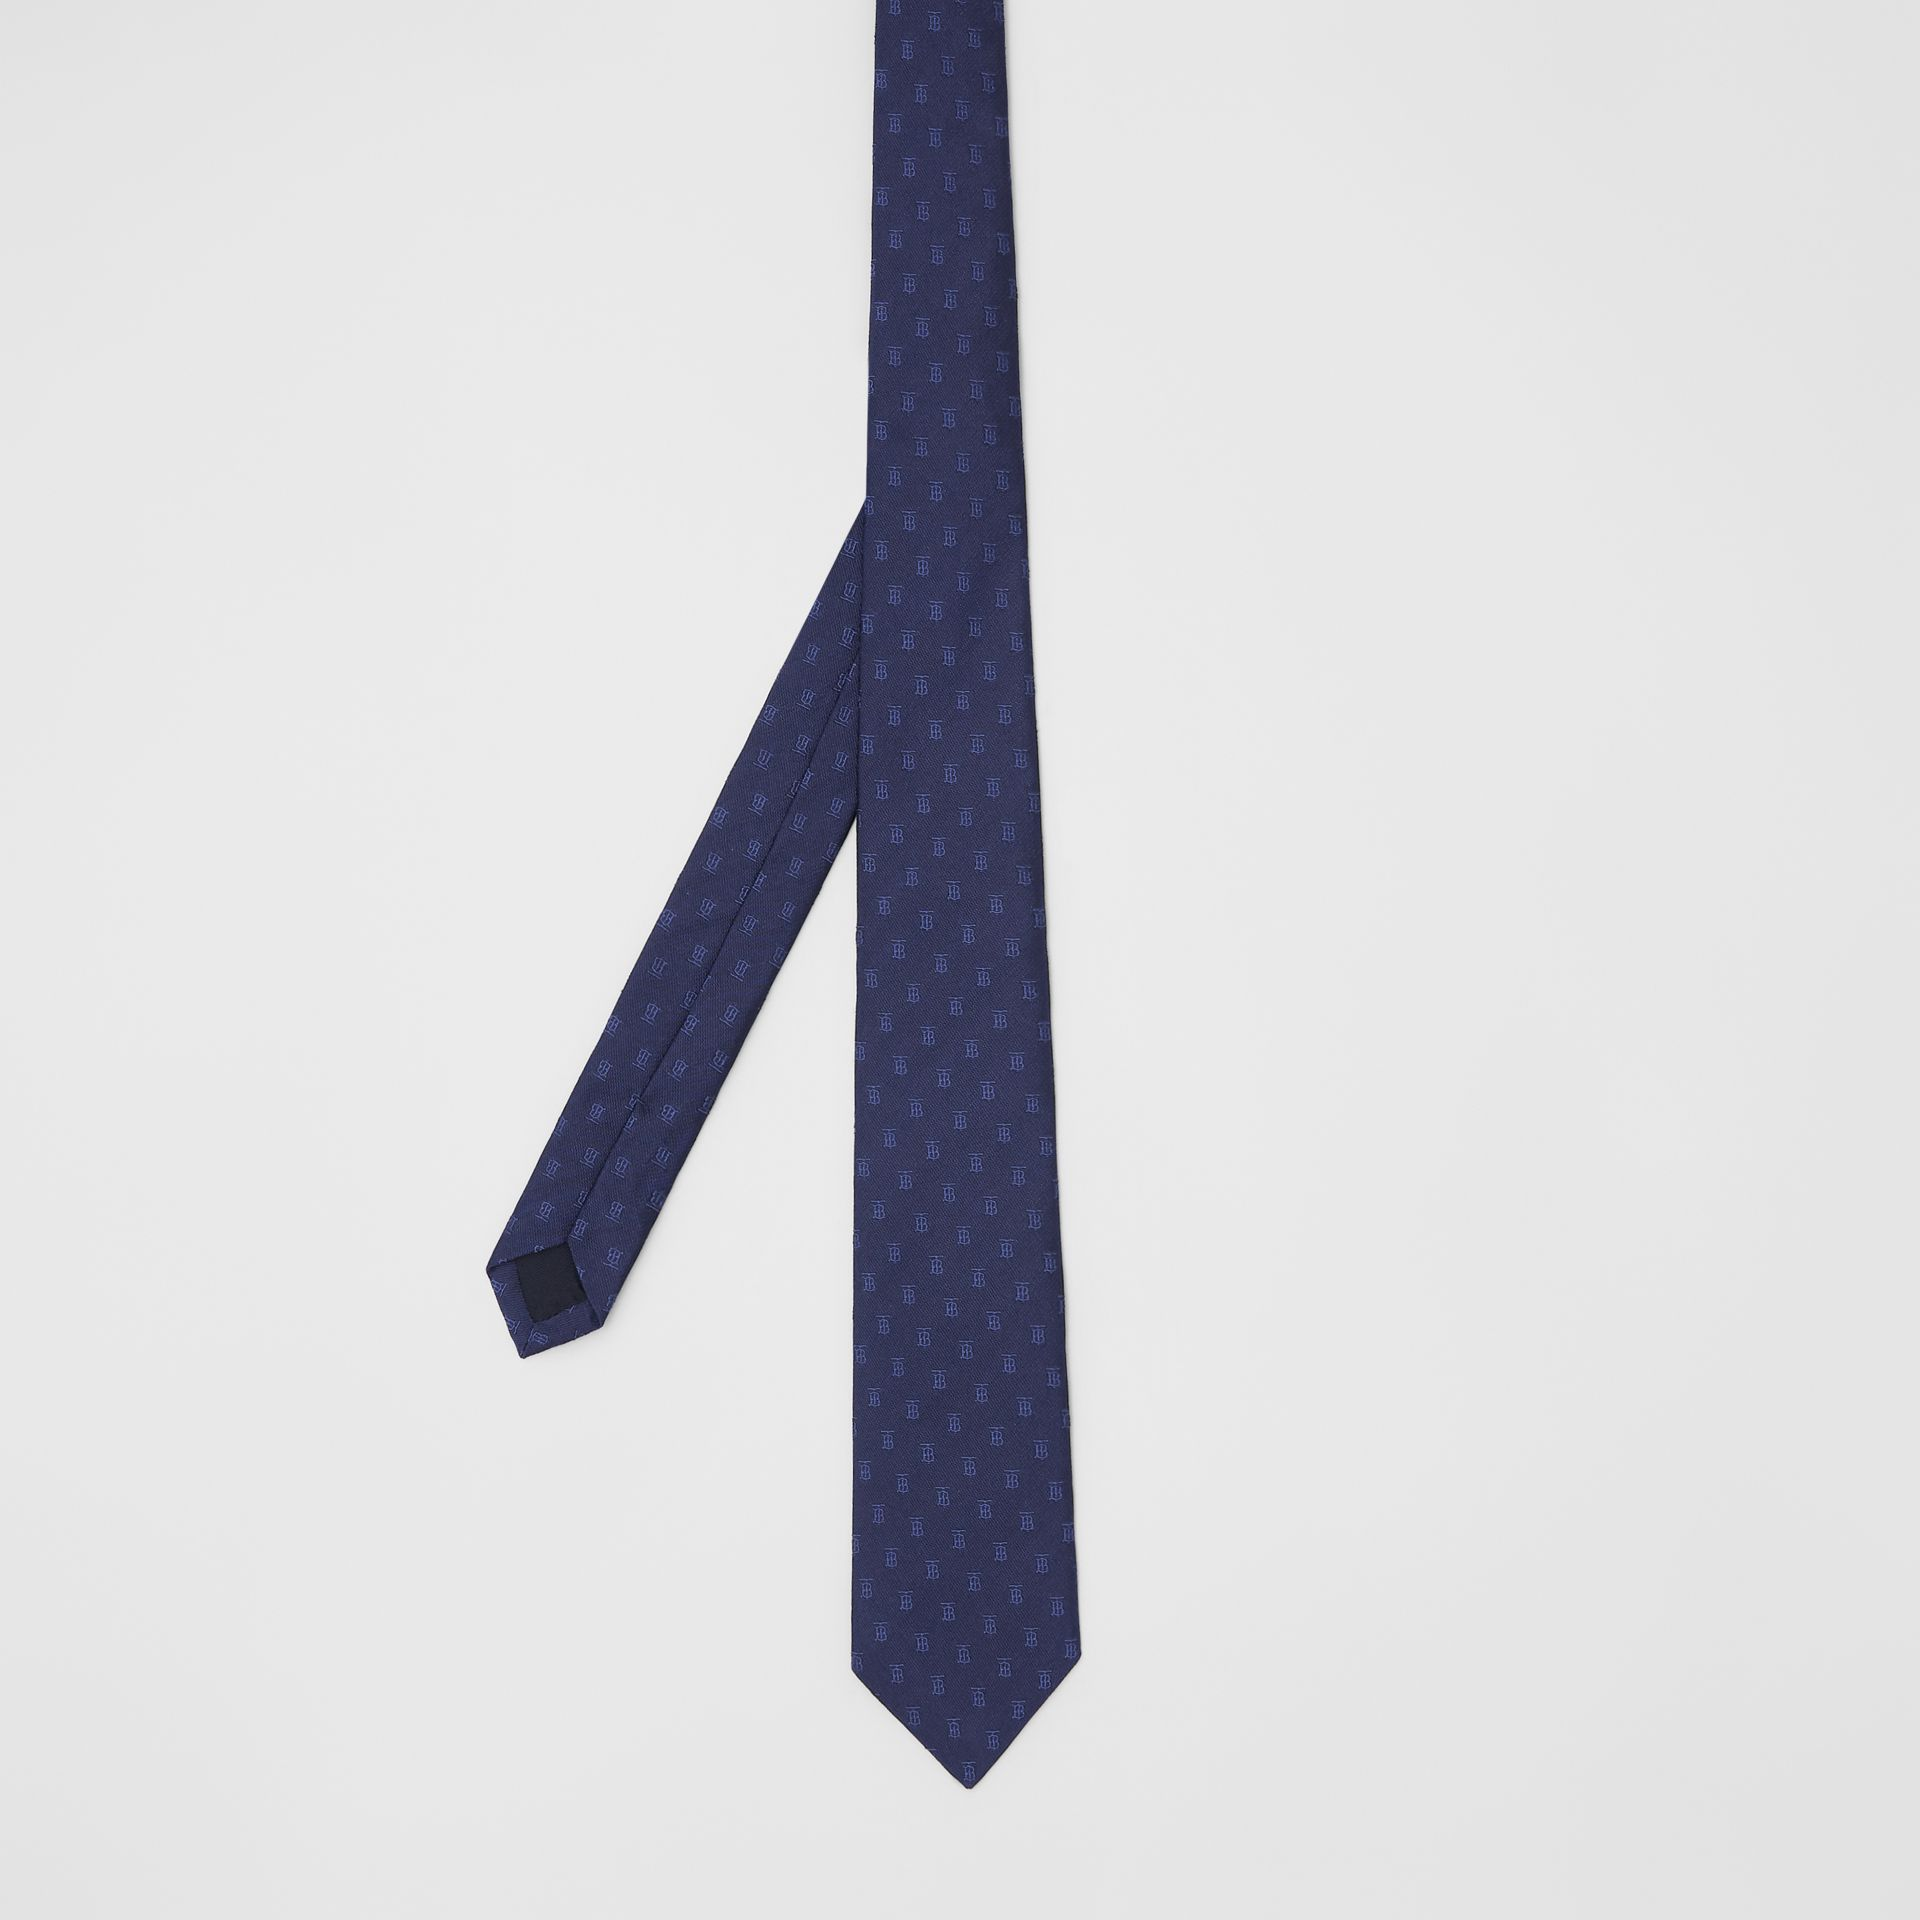 Classic Cut Monogram Motif Silk Jacquard Tie in Navy - Men | Burberry - gallery image 4